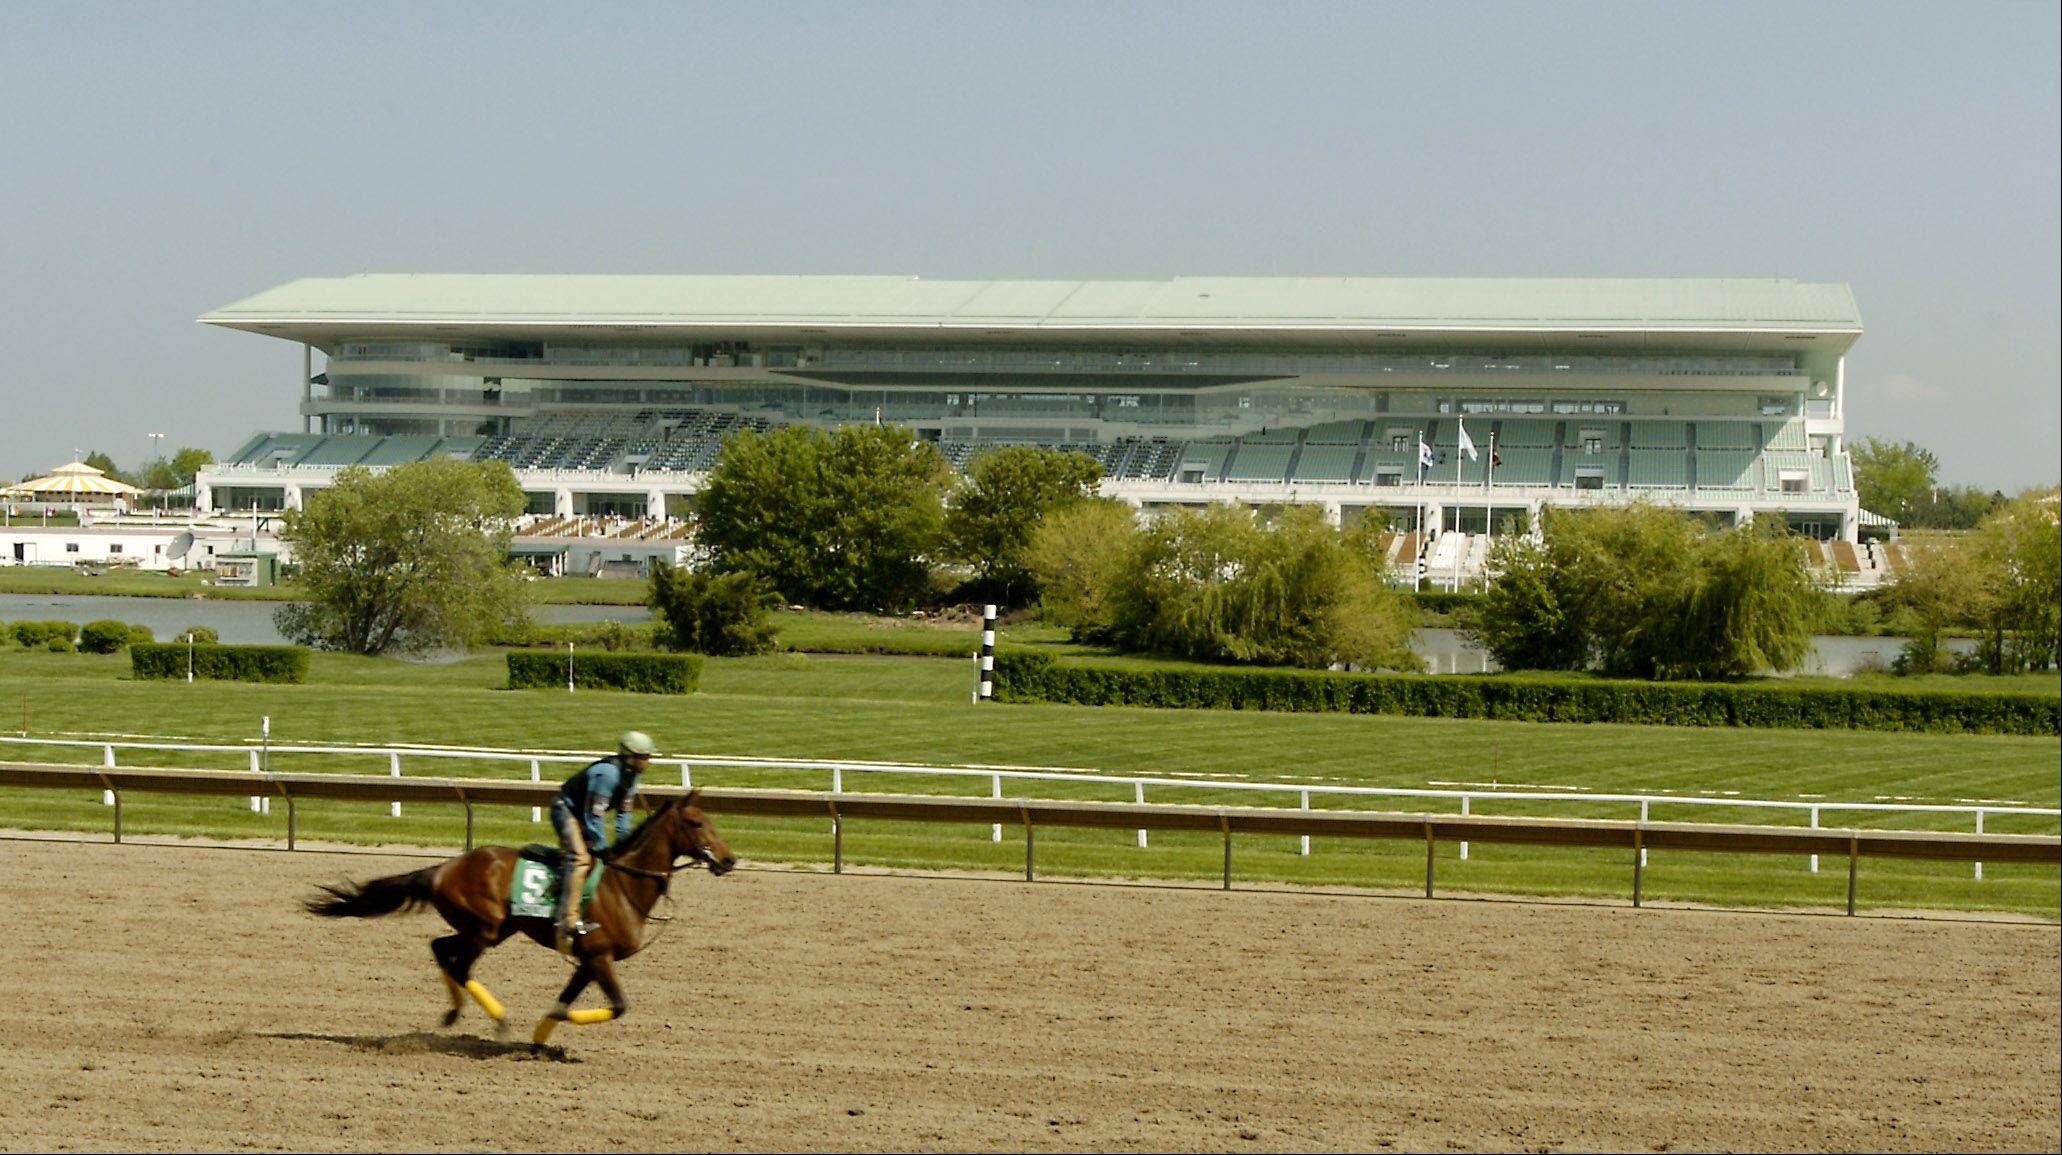 Arlington Park is scheduled to have 89 days of live racing next year beginning May 1.